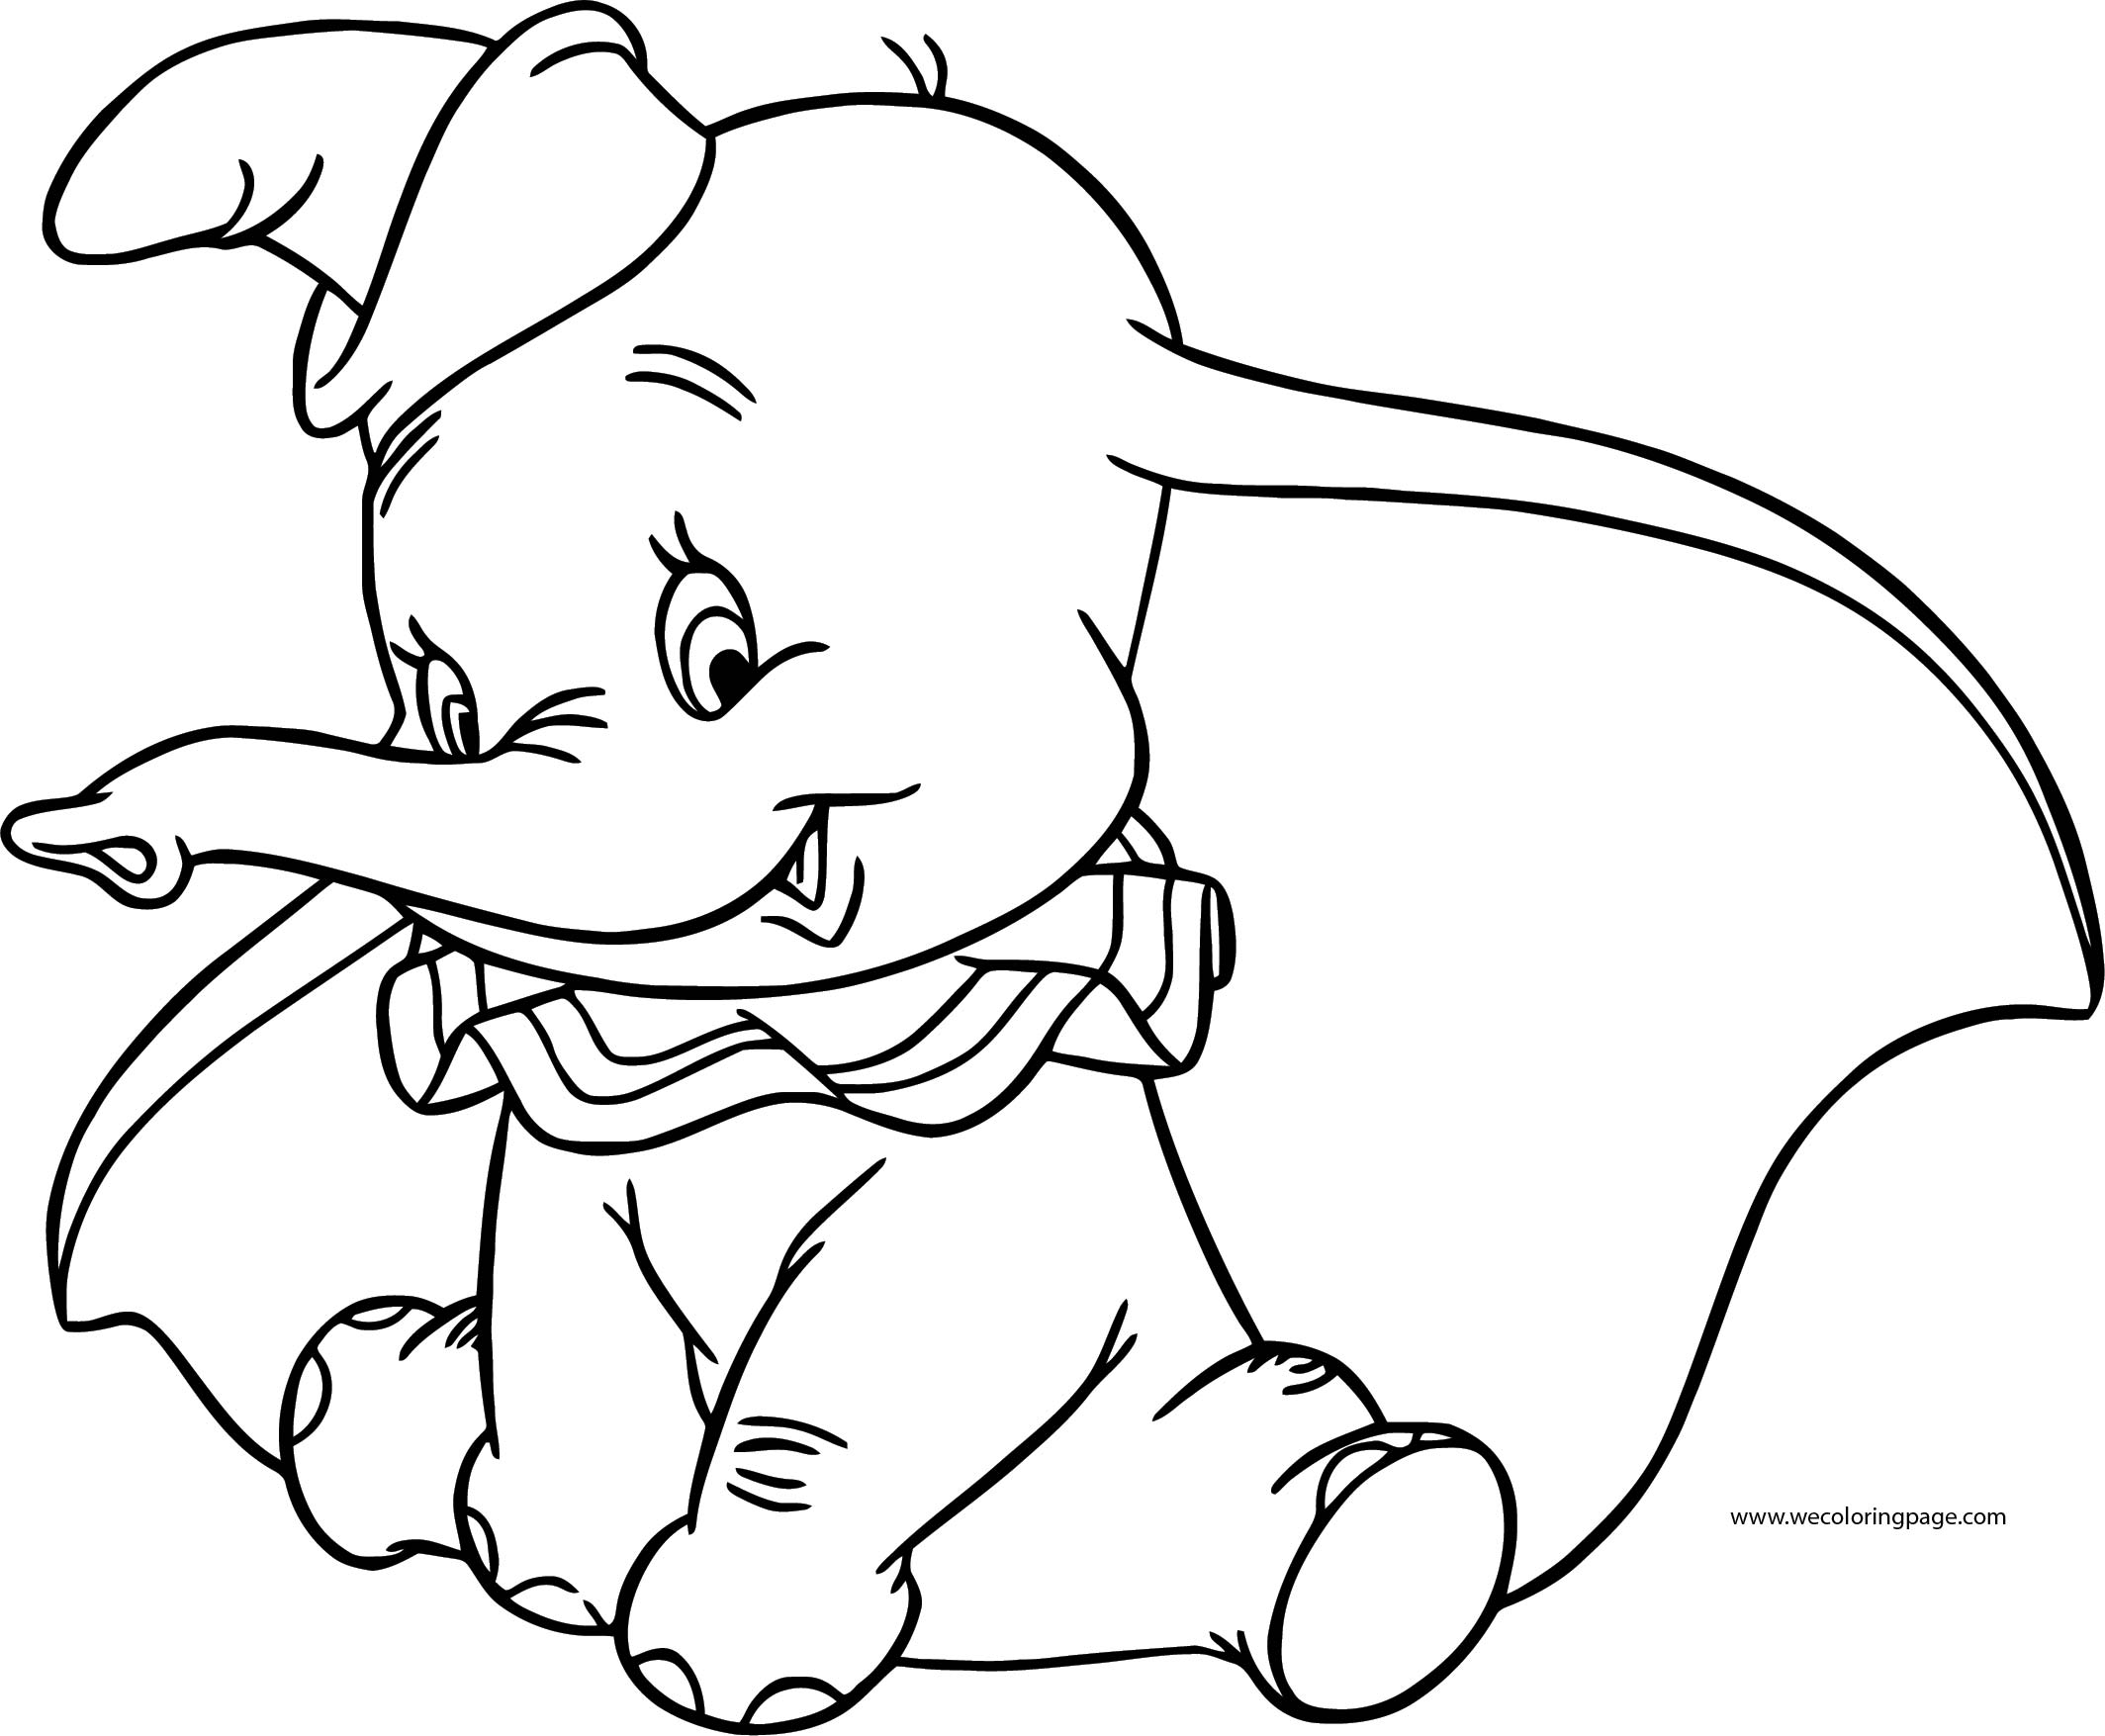 disney dumbo coloring pages dumbo coloring pages disneyclipscom pages disney coloring dumbo